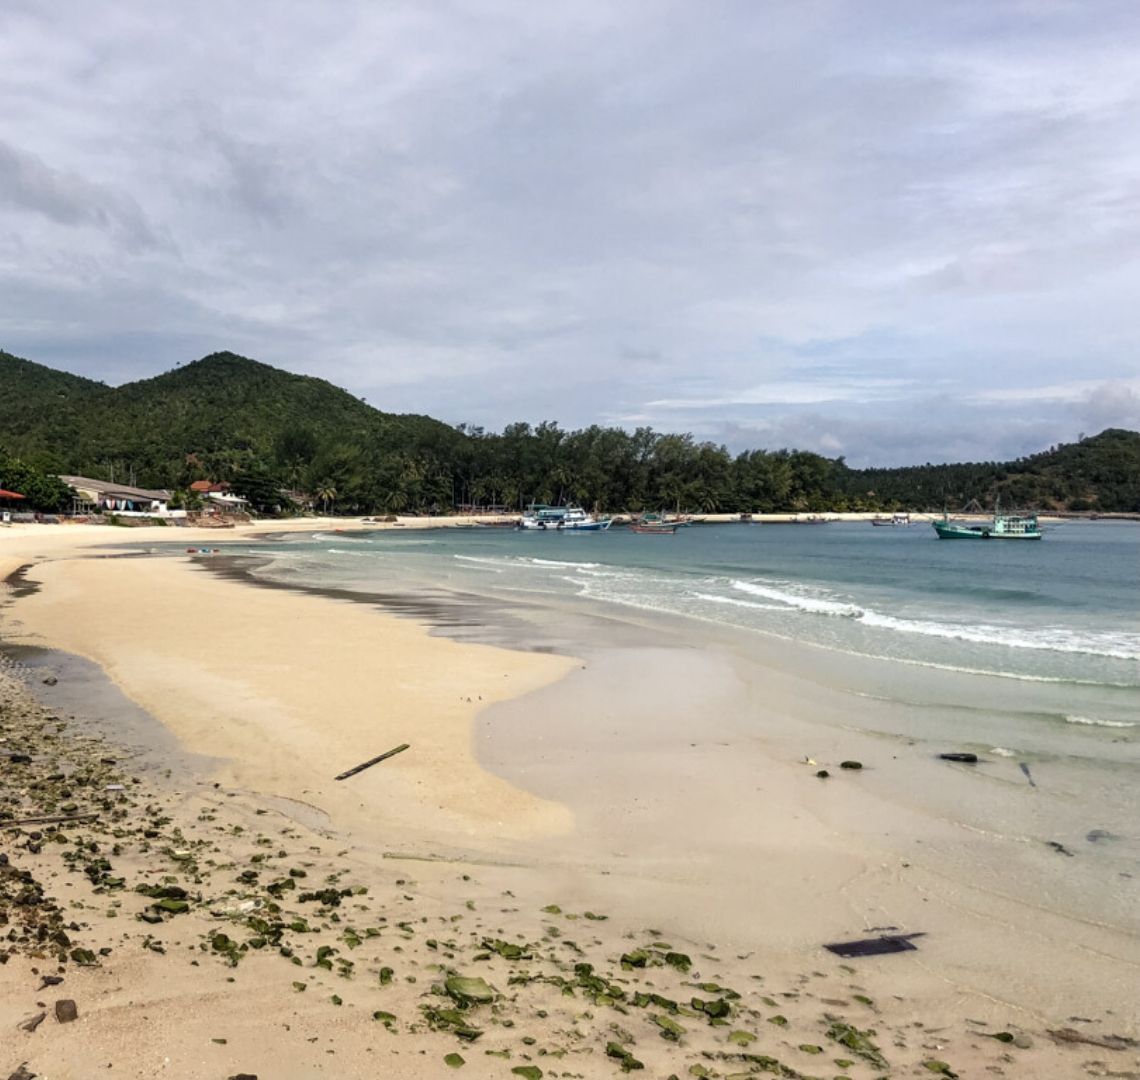 The white sand of Koh Phangan stretches in front and then bends around to the right, In the blue sea there are a few colourful boats. Just off the beach are a few buildings. Behind them are some tree covered hills. The sky is cloudy.